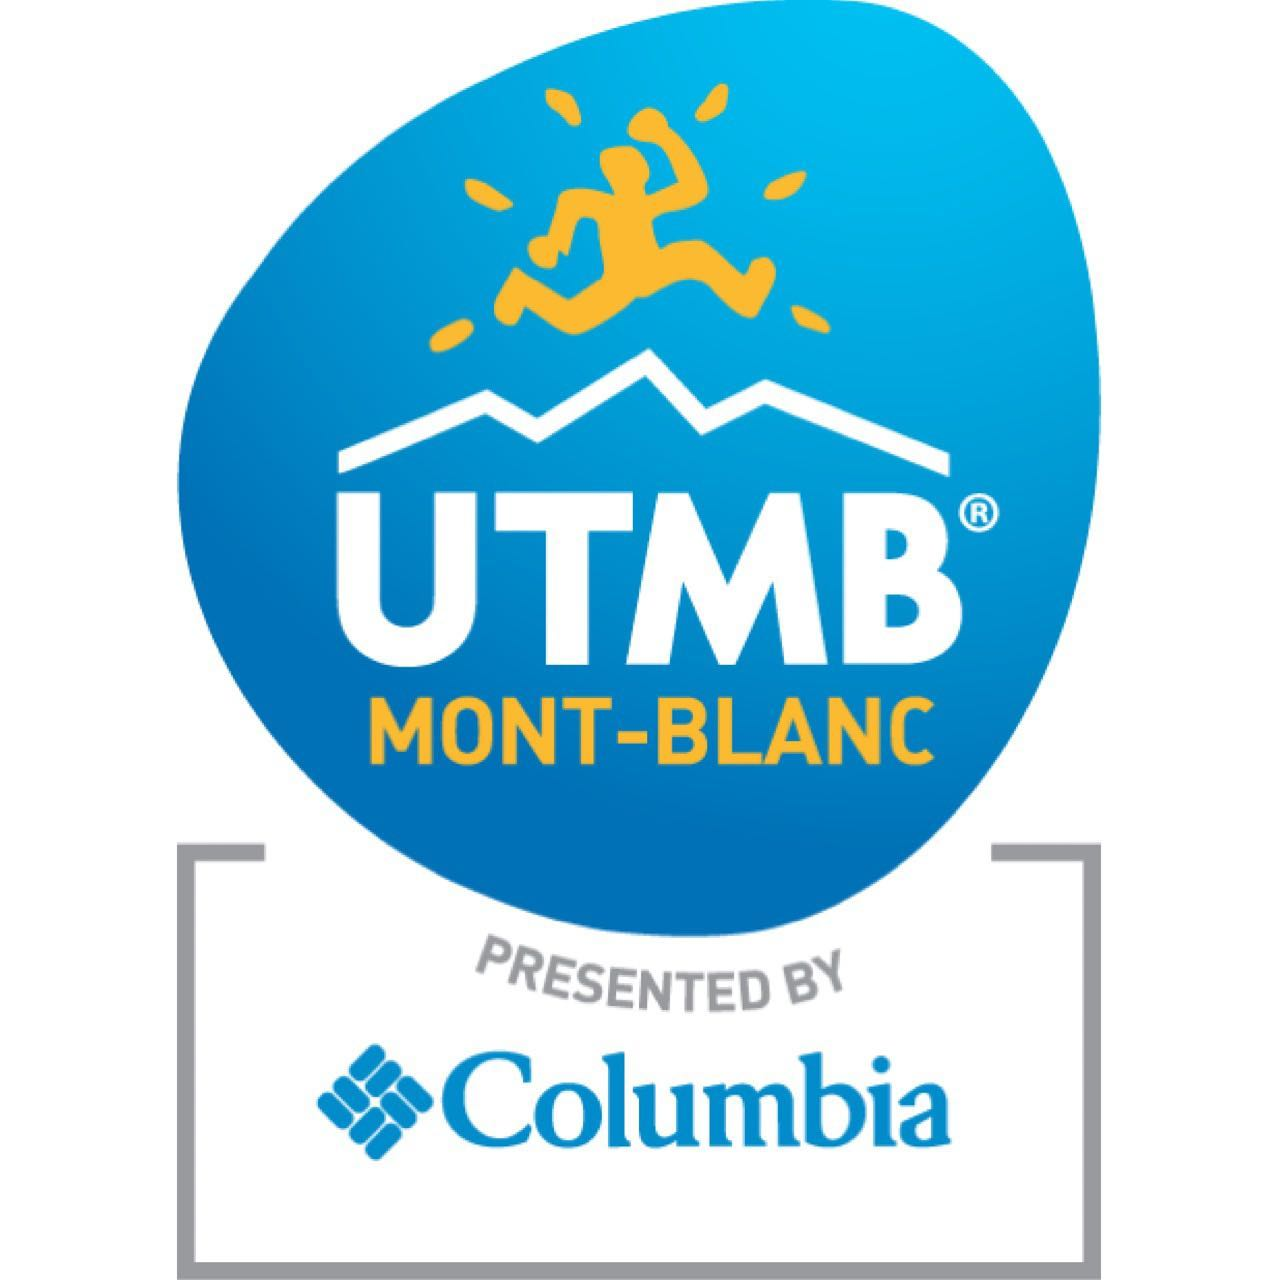 Earn 2-4 ITRA and UTMB(r) points for finishing the Bronze to Gold Ultra Peak District Challenge e...